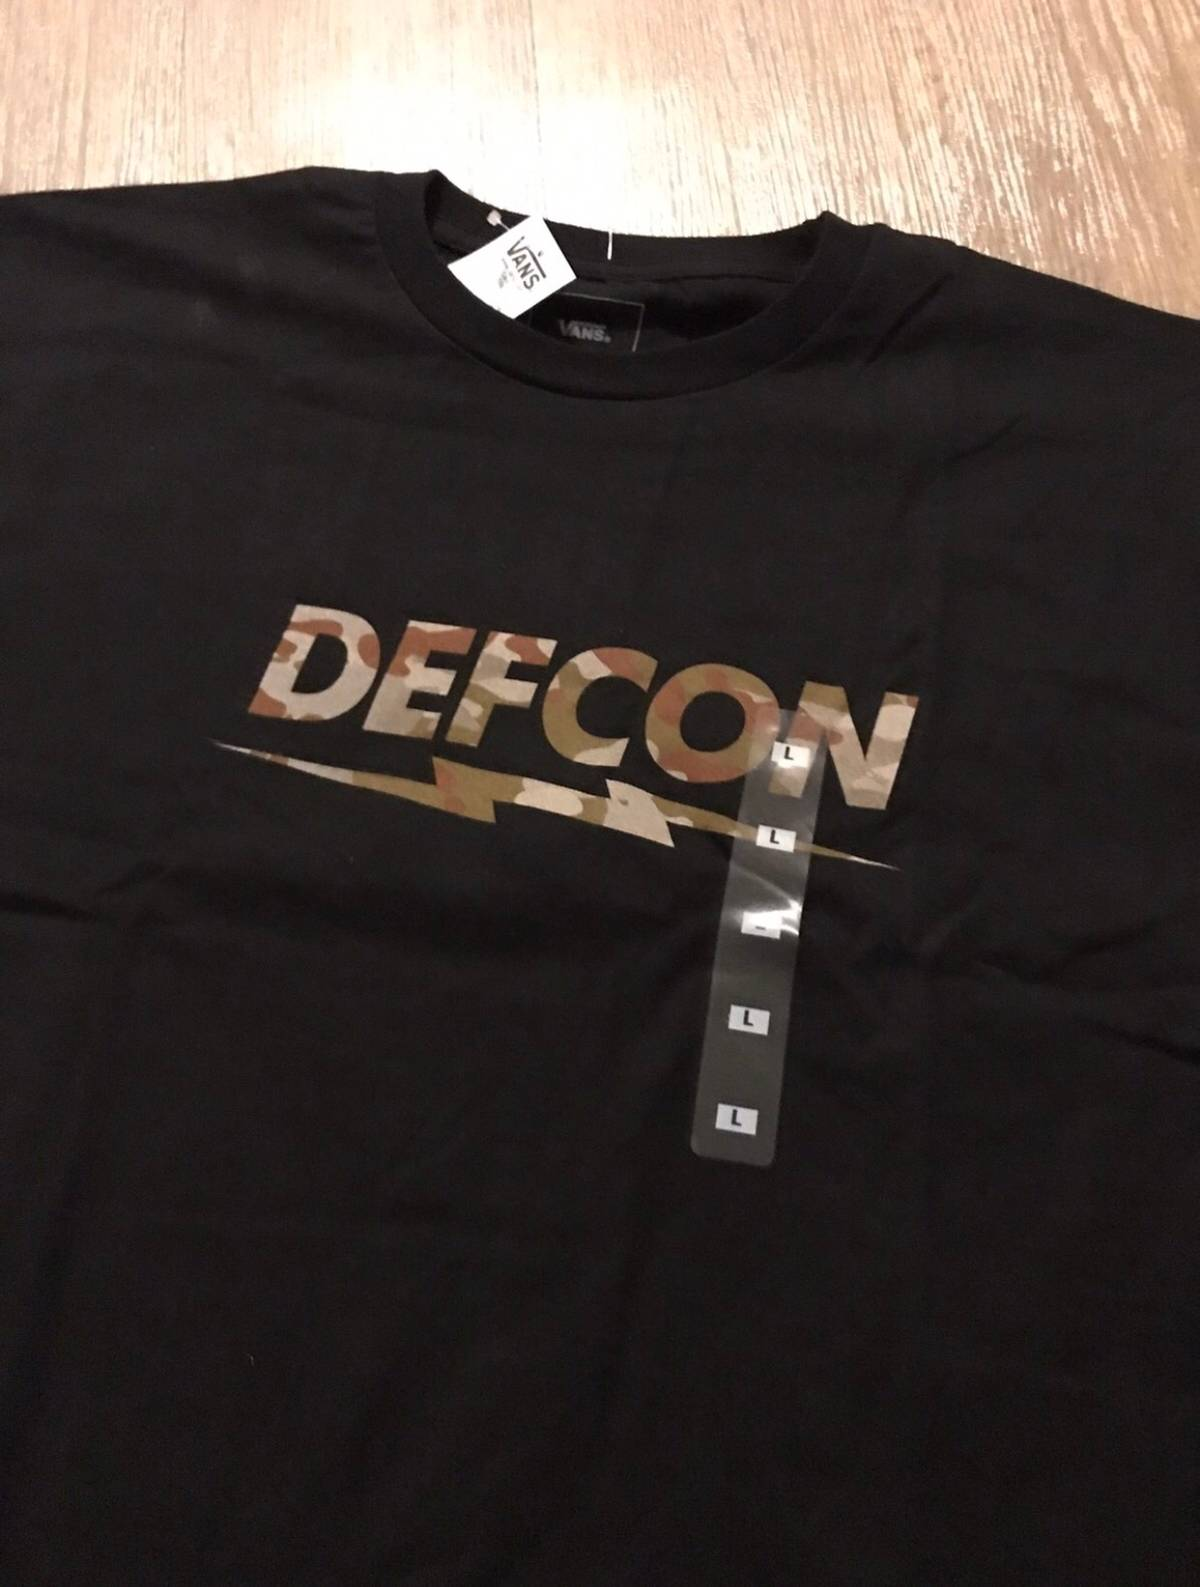 bf6c267493 Vans Vans X Defcon Multicam Tee Size l - Short Sleeve T-Shirts for Sale -  Grailed